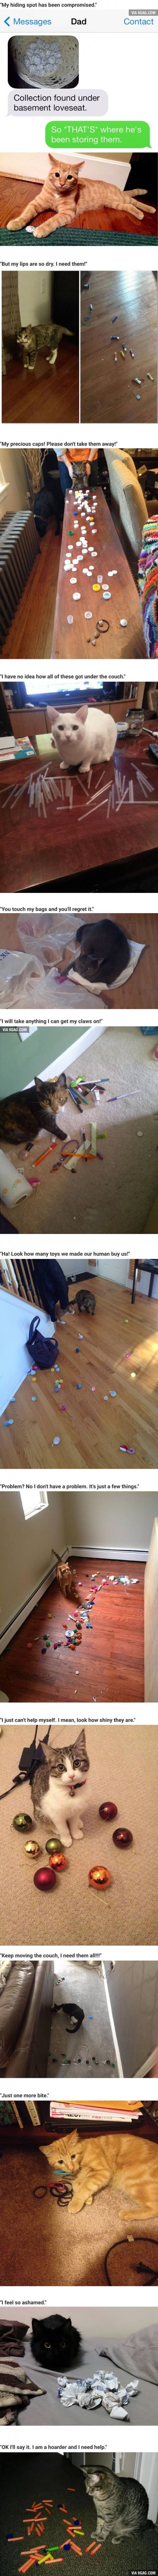 13 Hoarder Cats Who Need To Admit They Have A Problem